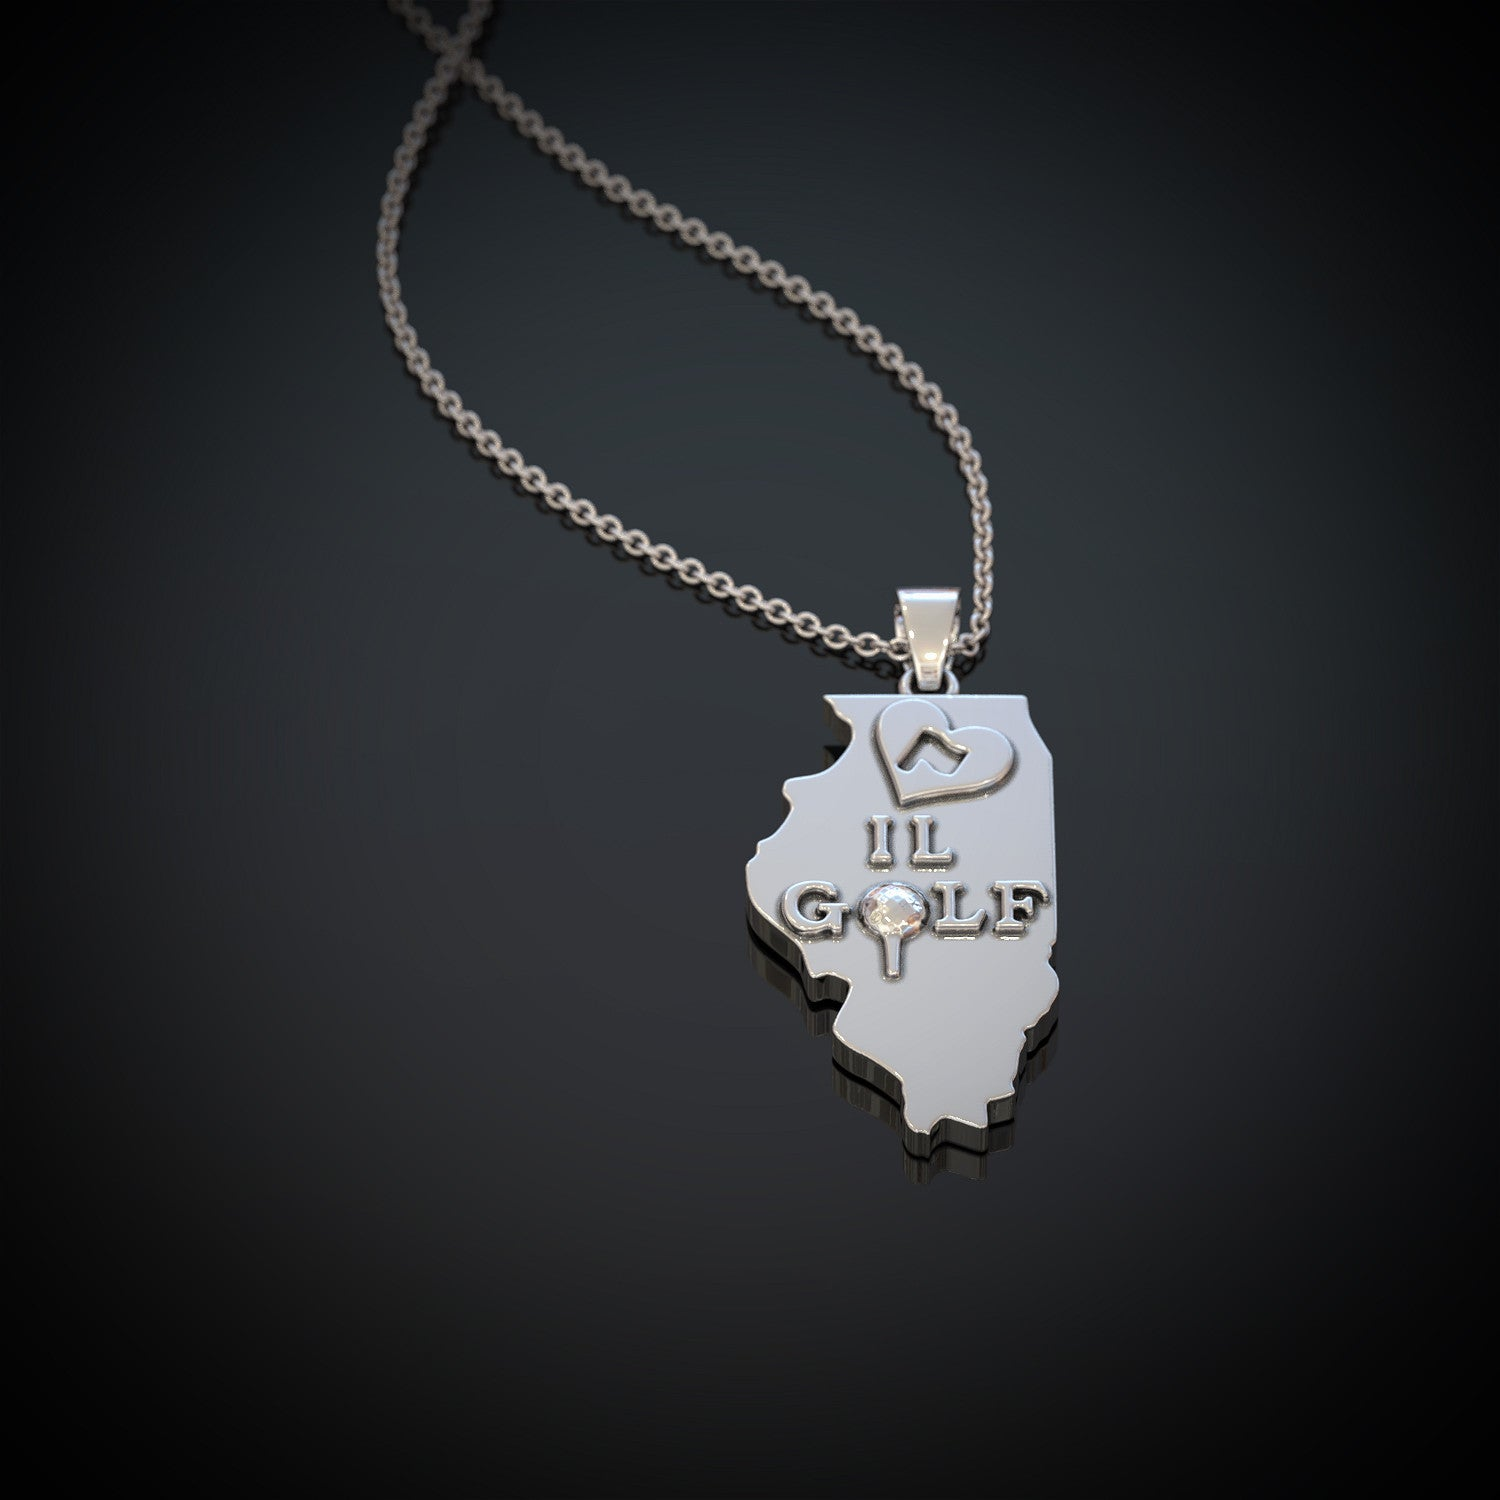 Love il golf necklace shineon love il golf necklace aloadofball Image collections